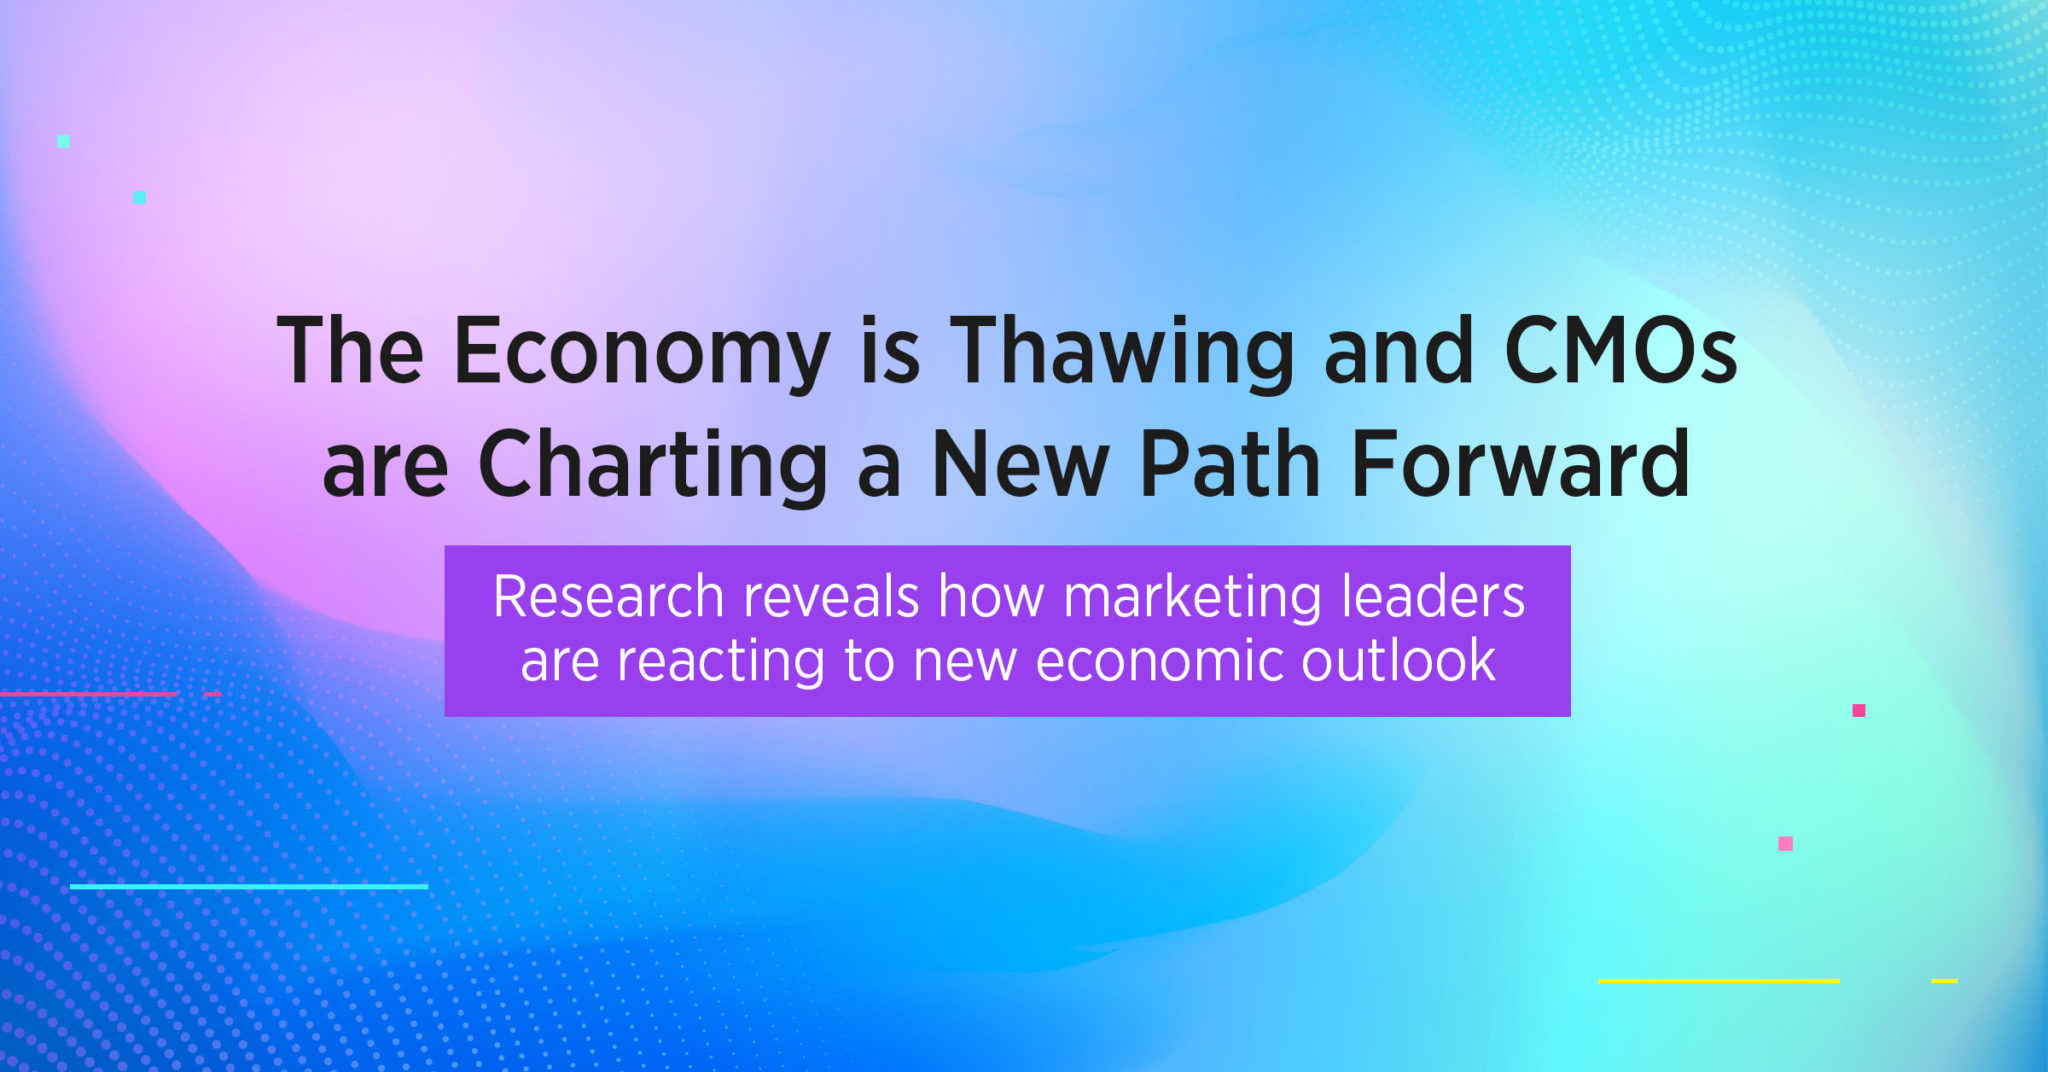 The Economy is Thawing and CMOs are Charting a New Path Forward